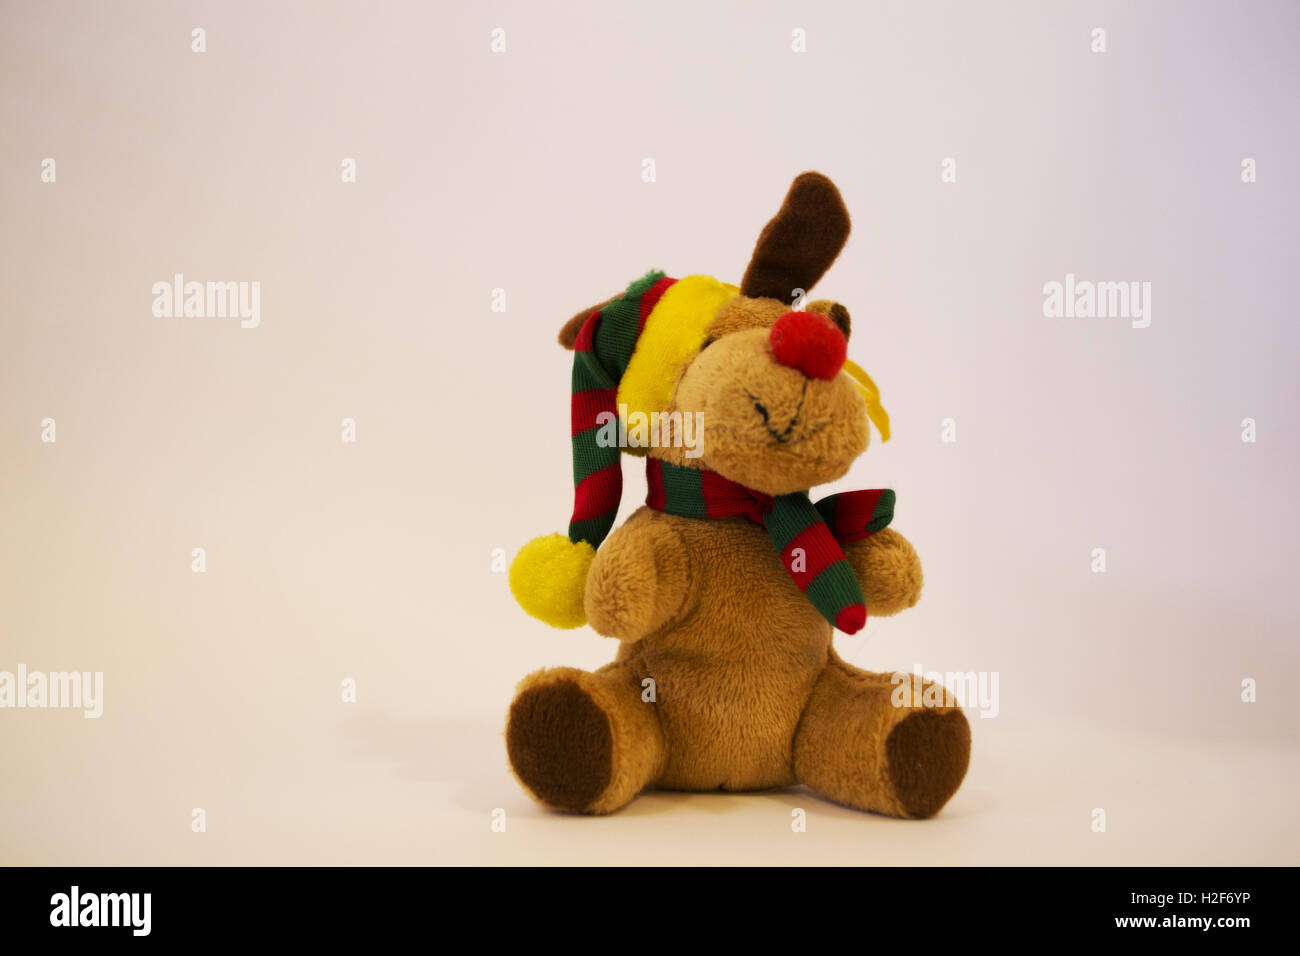 Image of a small doll dog with cute brown color with a small hat and colorful cap in white background. it is cute - Stock Image